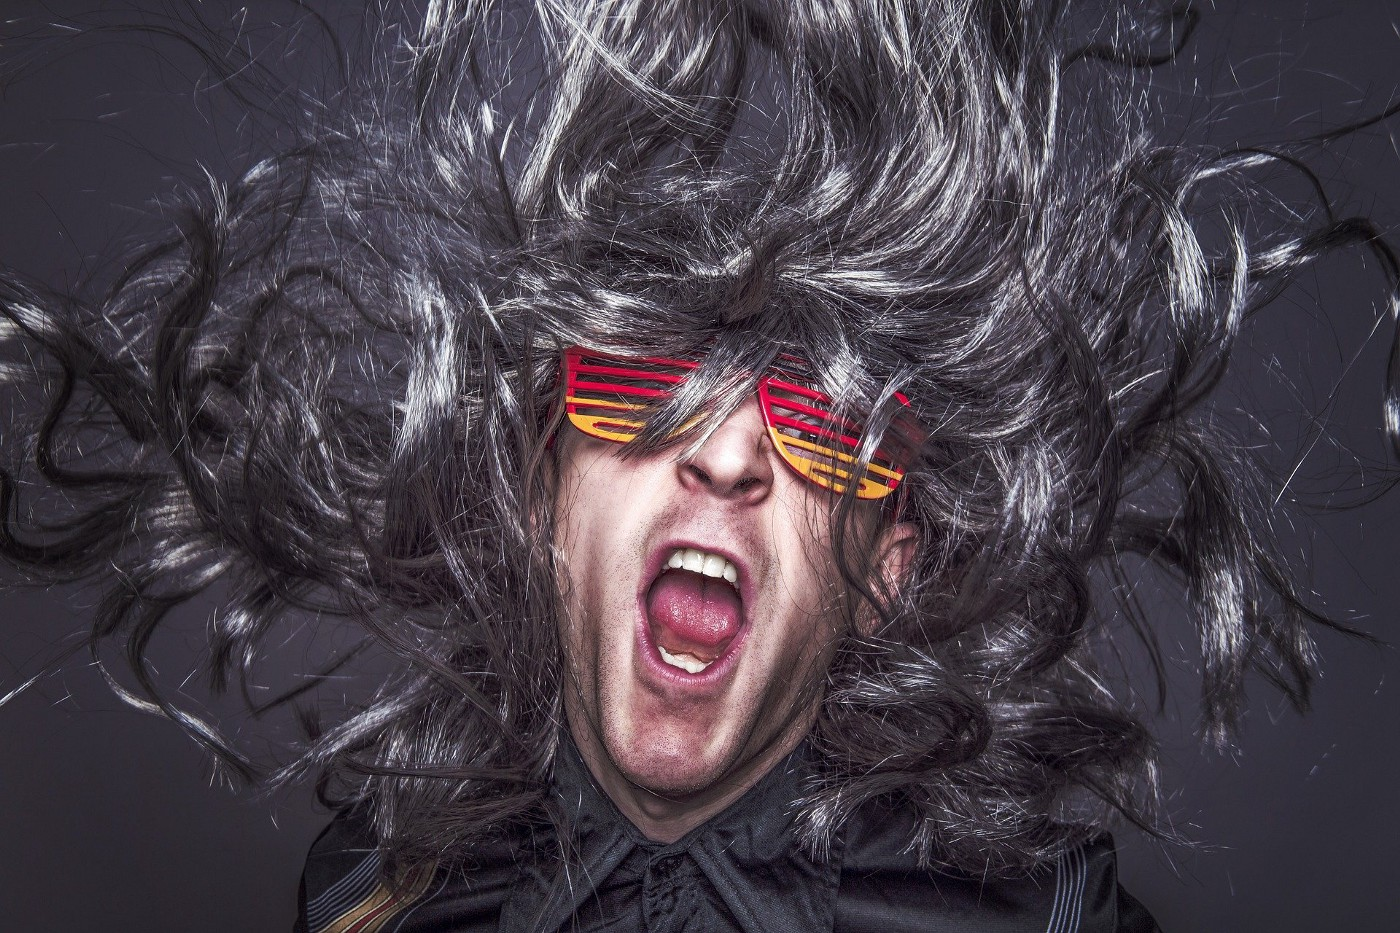 Musician with long, gray, wild hair and red and yellow slatted glasses. He is singing.